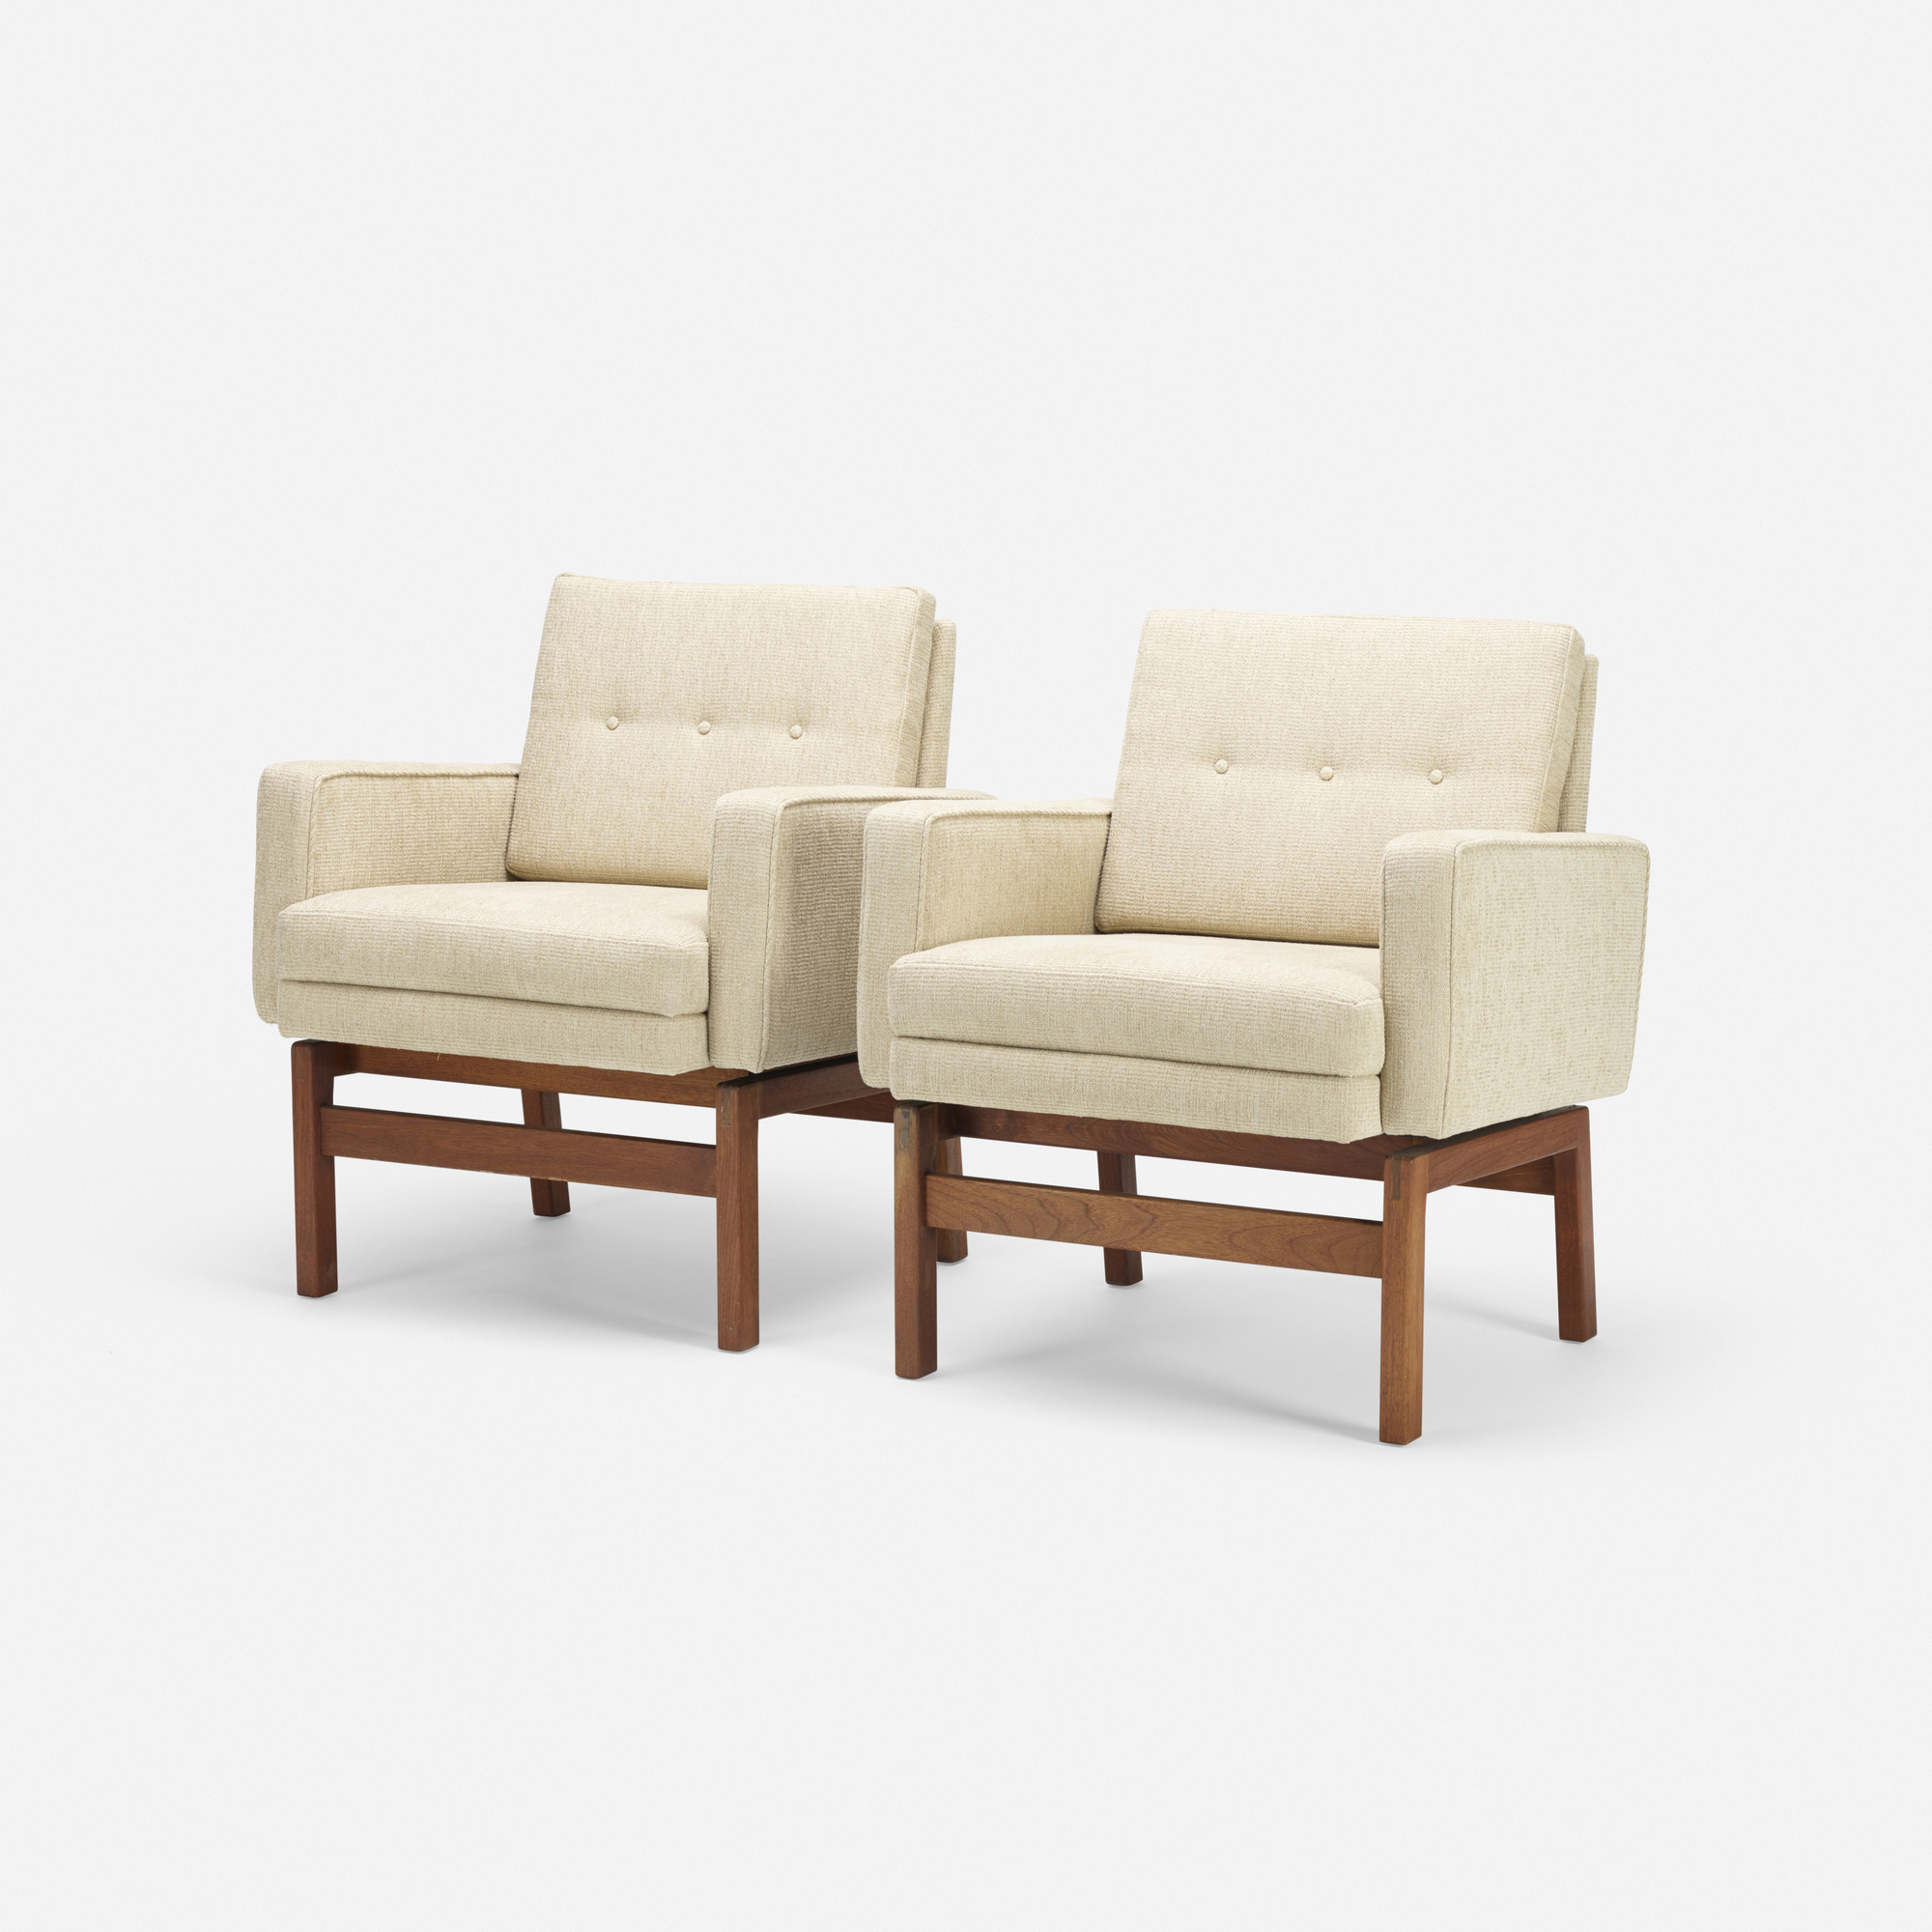 113: Jens Risom / lounge chairs, pair (2 of 3)